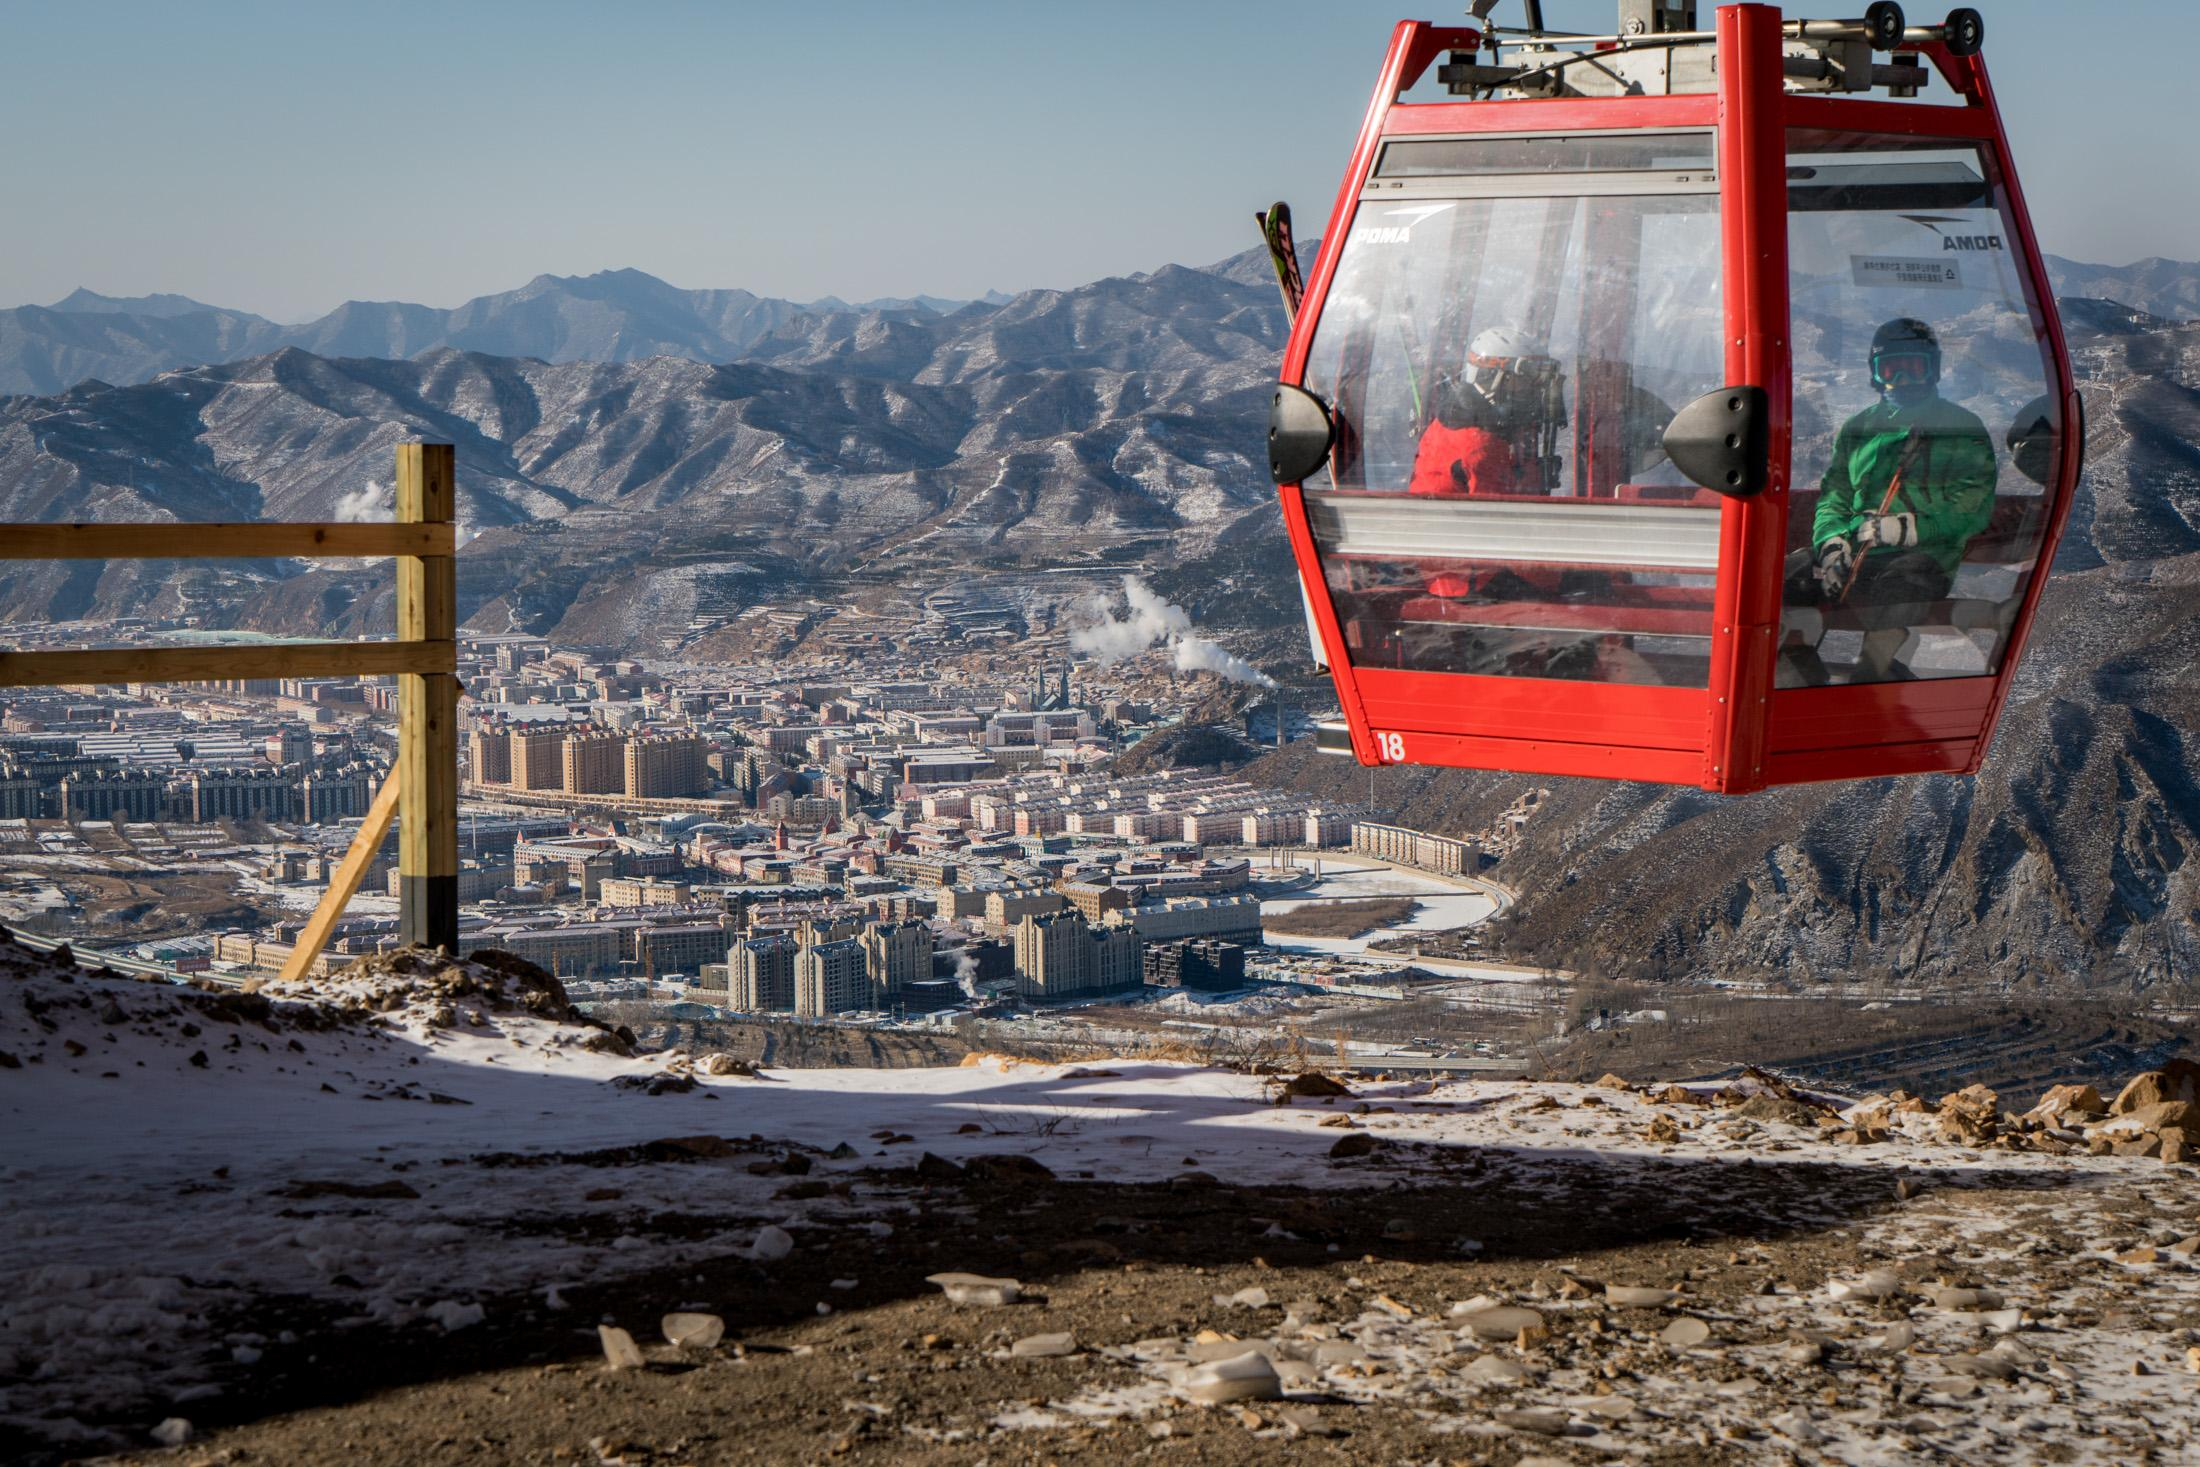 Skiers in a gondola arrive at the top of a slope at Galaxy Ski Resort in January, 2018. Chongli downtown, with all the newly built apartments, is seen in the background.